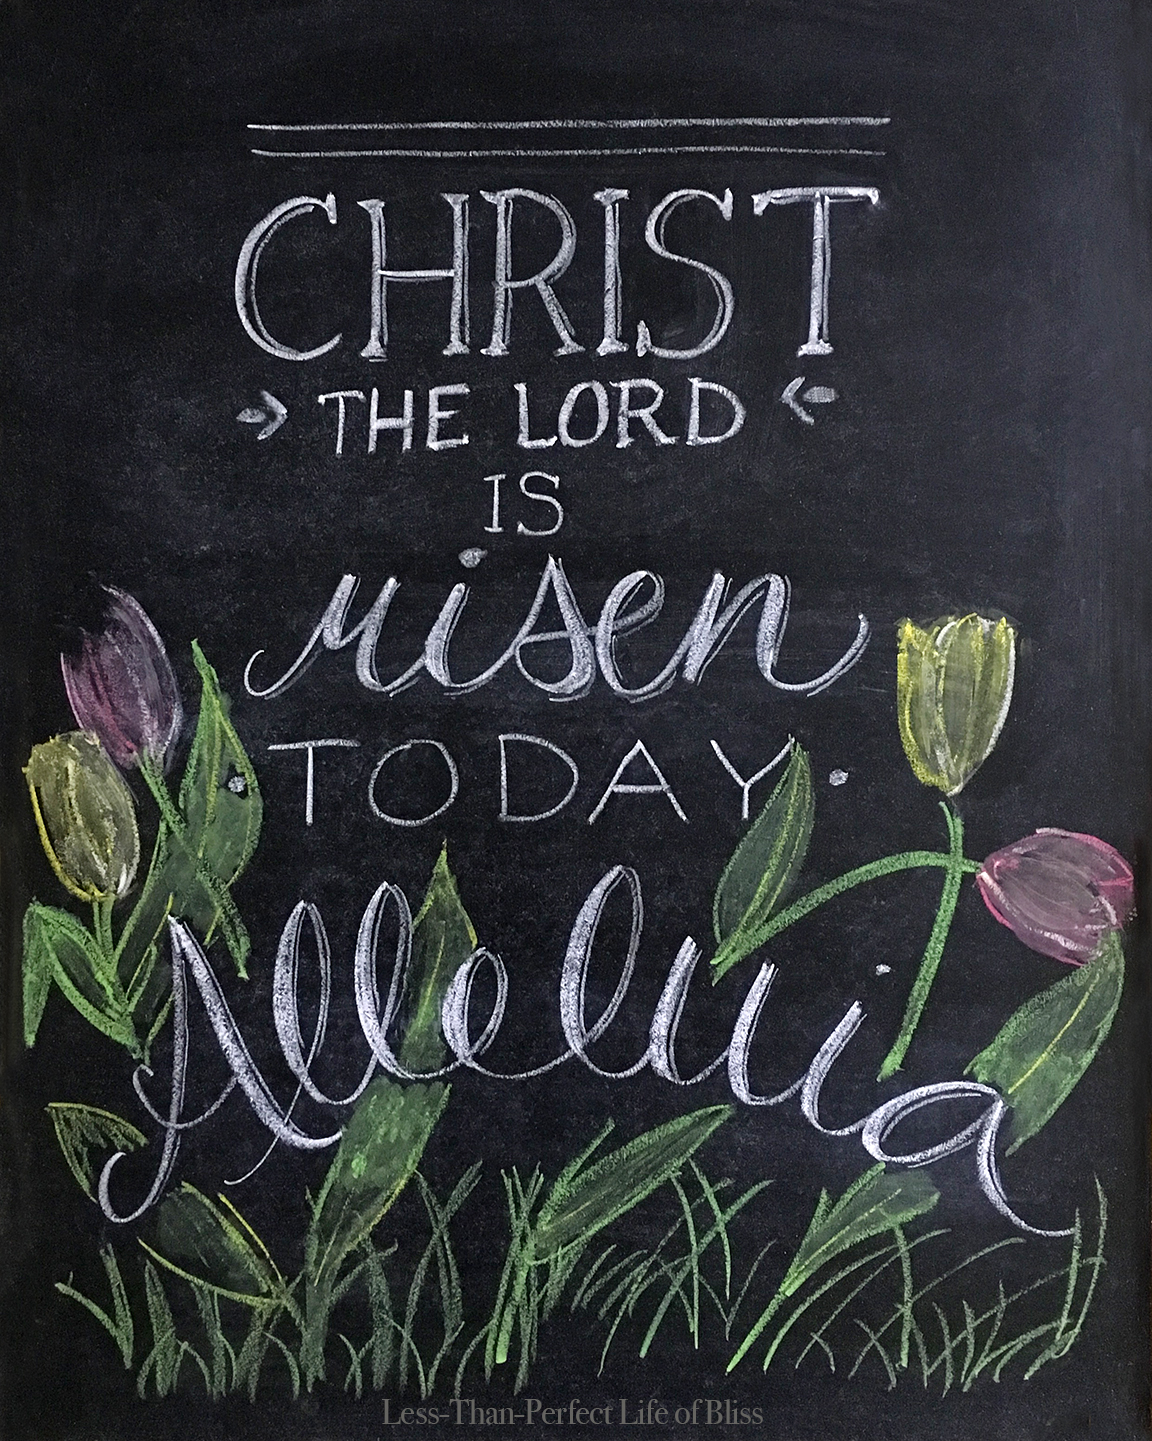 CHRIST IS RISEN!TRULY HE IS RISEN! - We hope the joy of Christ's resurrection is filling your hearts and your homes.Check out these parenting resources and then read on to see what your kids are learning in Sunday School this month.TOTS (Toddlers & Preschool)           KIDS(Kindergarten - 5th Grade)TEENS (6th-12th Grade)